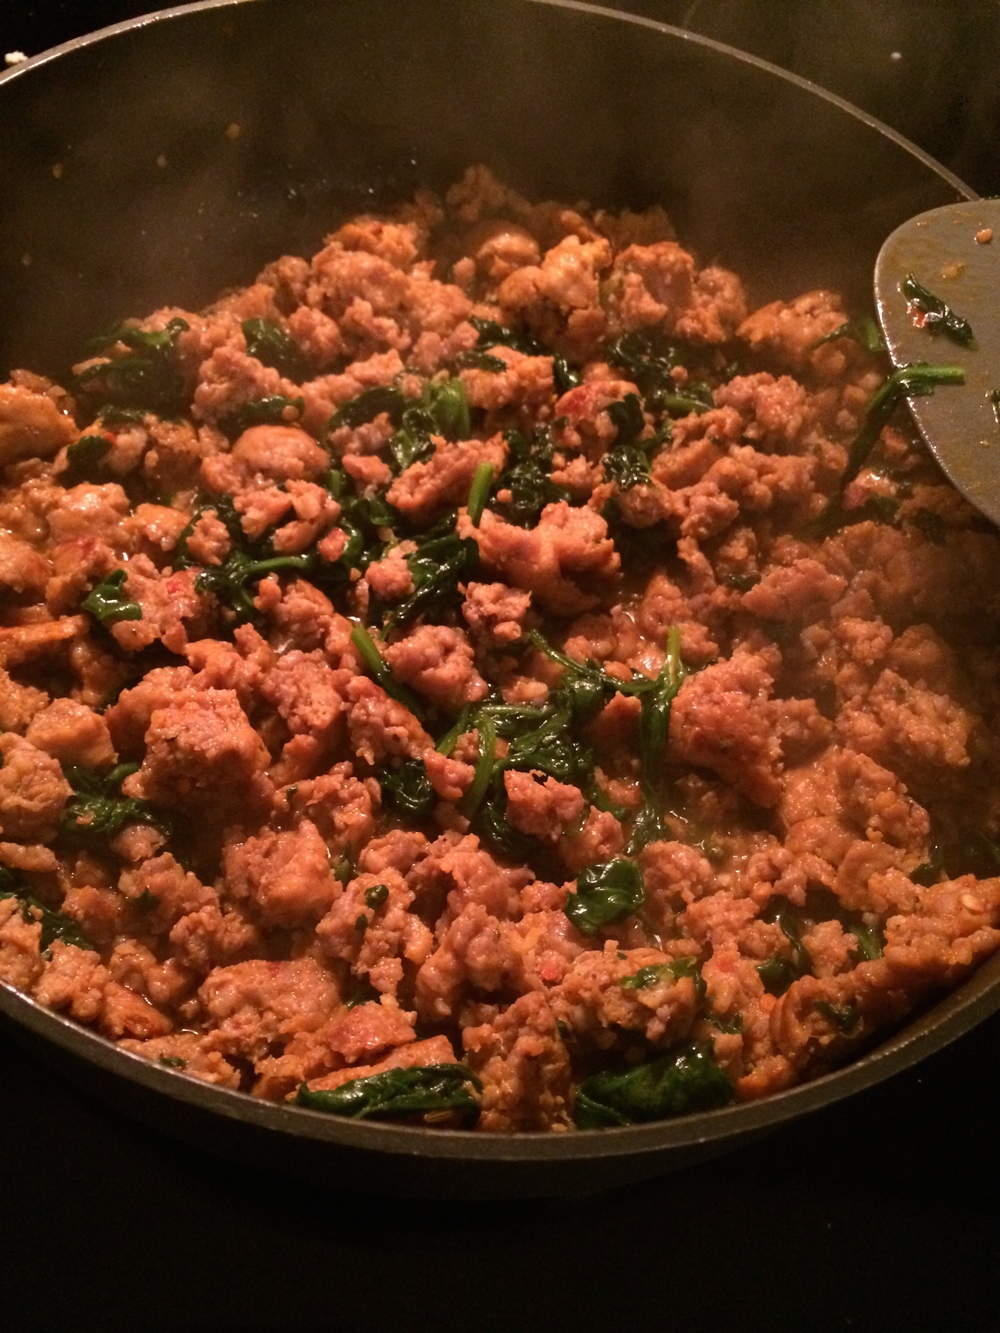 Here is how my sister cooks up her sausage for her weekly egg bake. She chooses to cook down her spinach with her sausage. Do whatever works best for you!